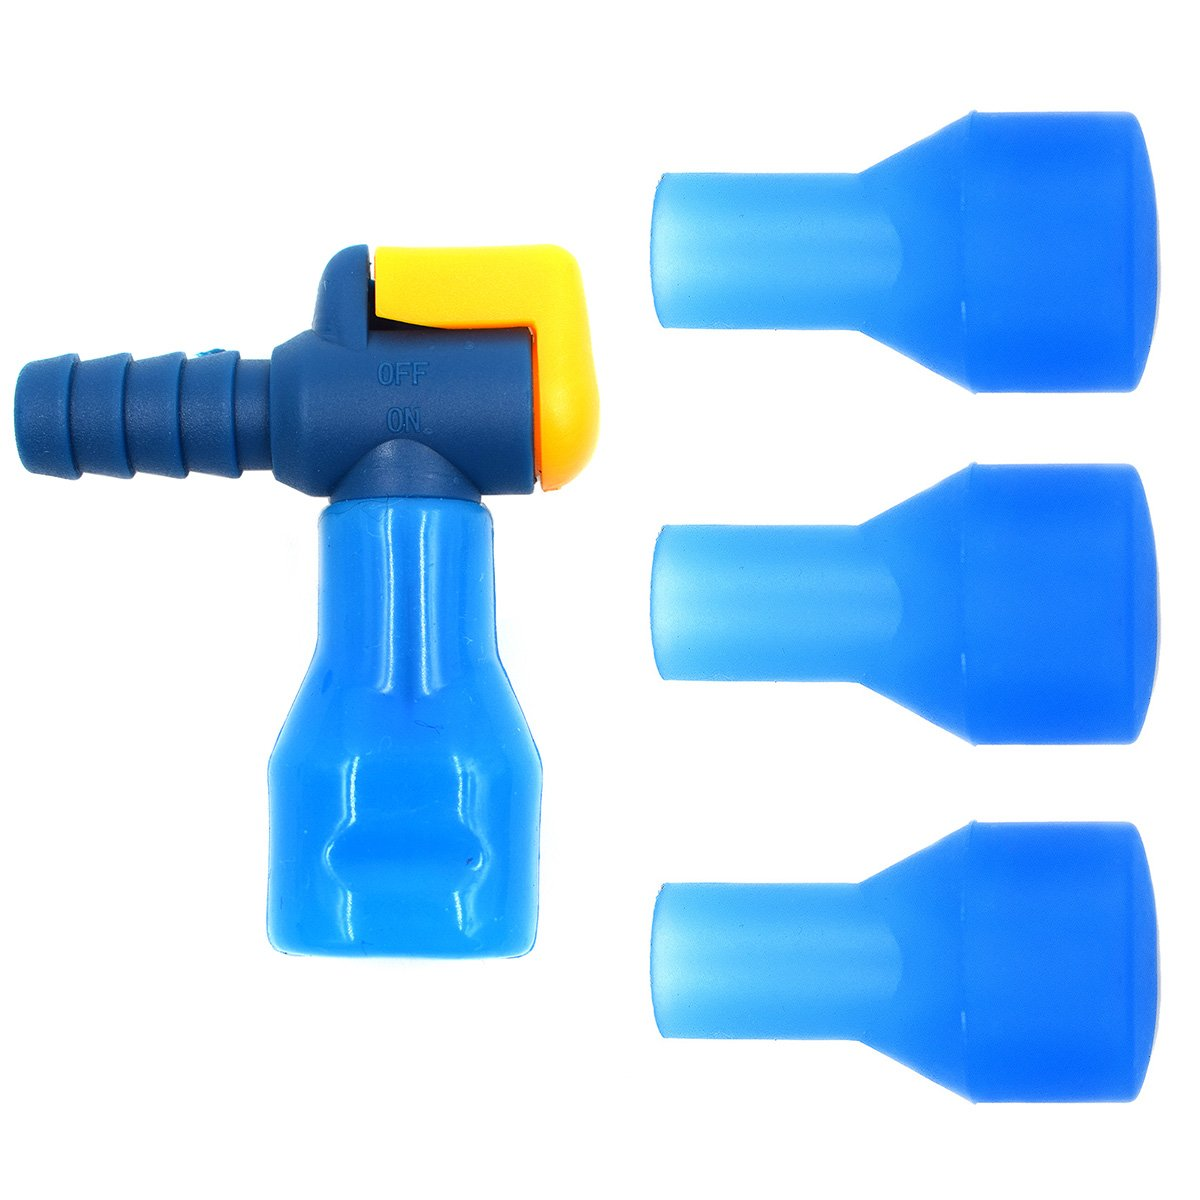 Replacement Hydration Pack Bite Valves For Camelbak Cycle Sports Packs Bladder/&W